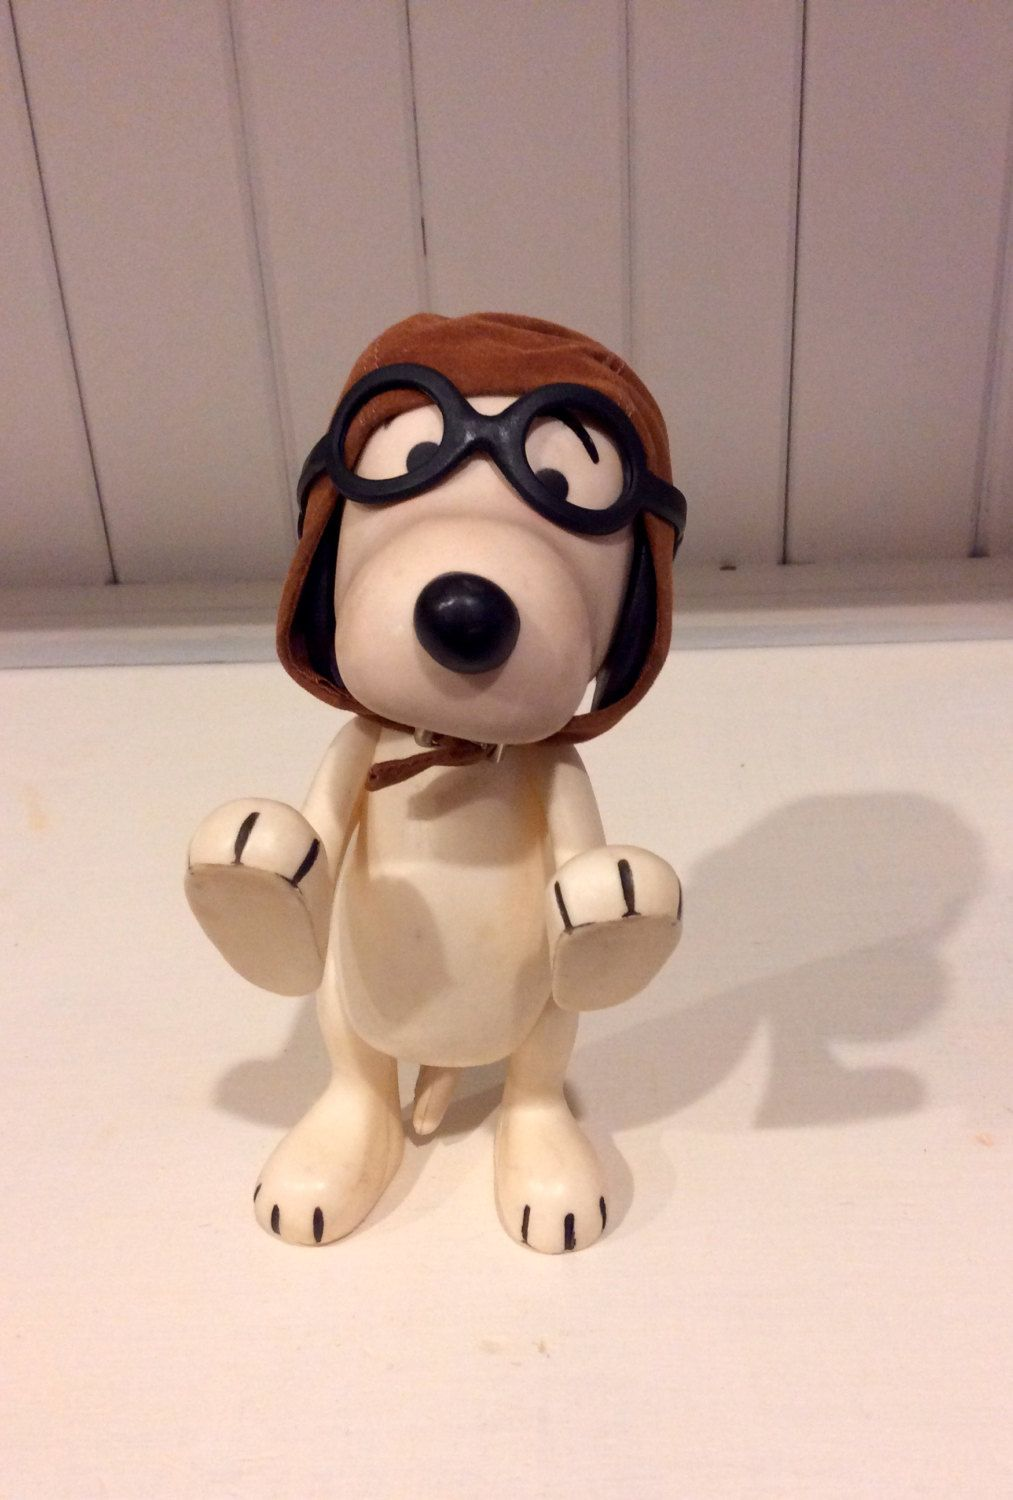 1966 United Feature Syndicate Red Baron Pilot Snoopy Poseable Vinyl Doll Colorful Toys Vinyl Dolls Kids Room